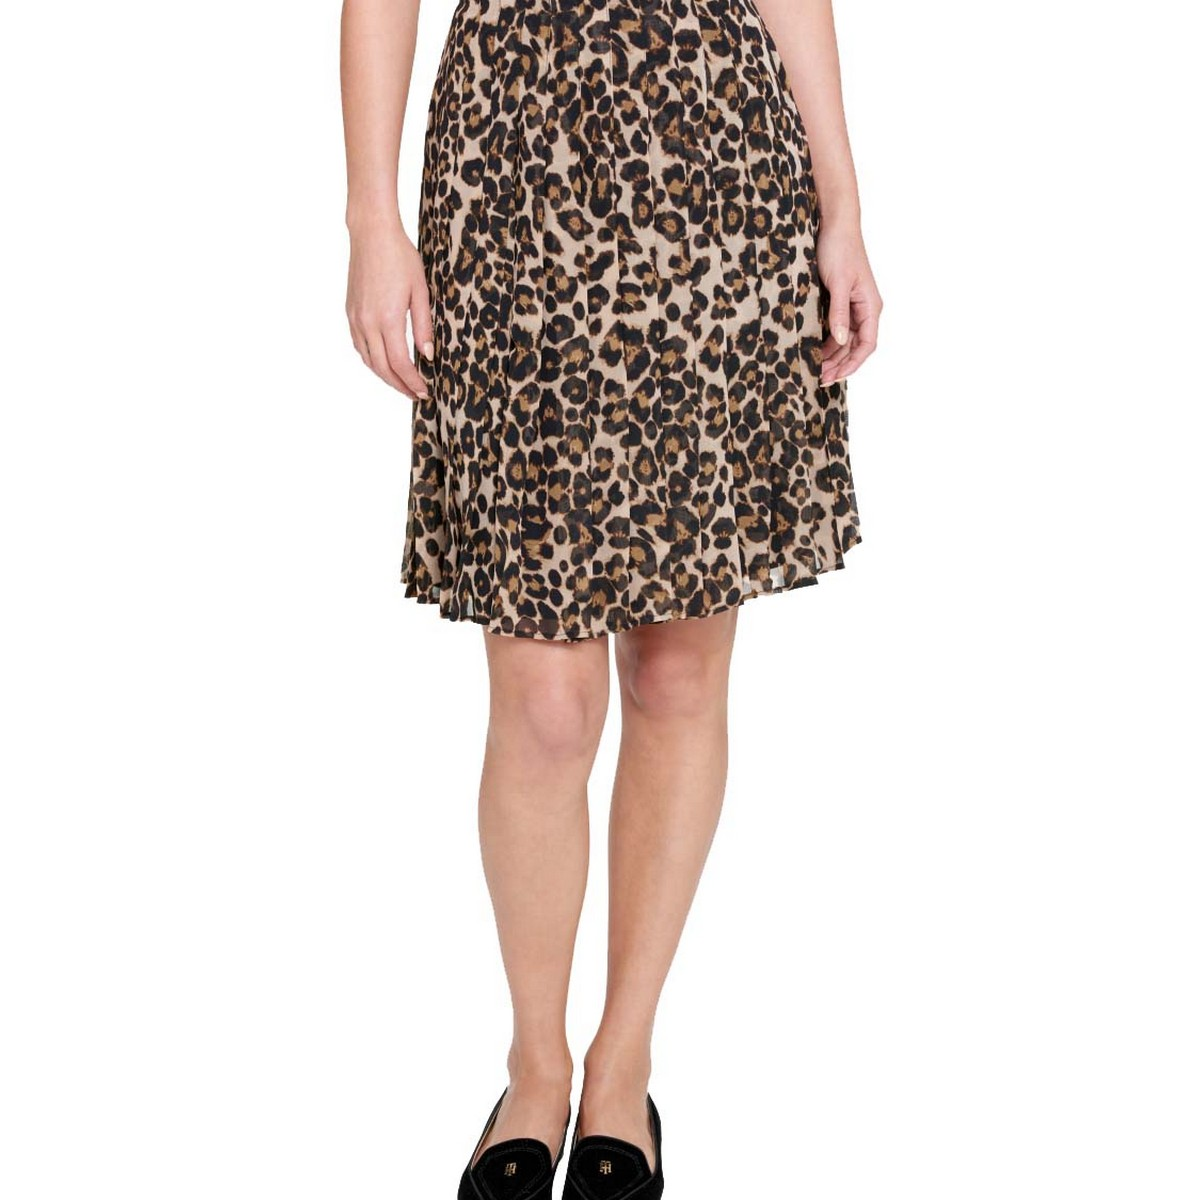 2dac3ecc74 Details about TOMMY HILFIGER NEW Women's Brown Animal Print Pleated Skirt  14 TEDO